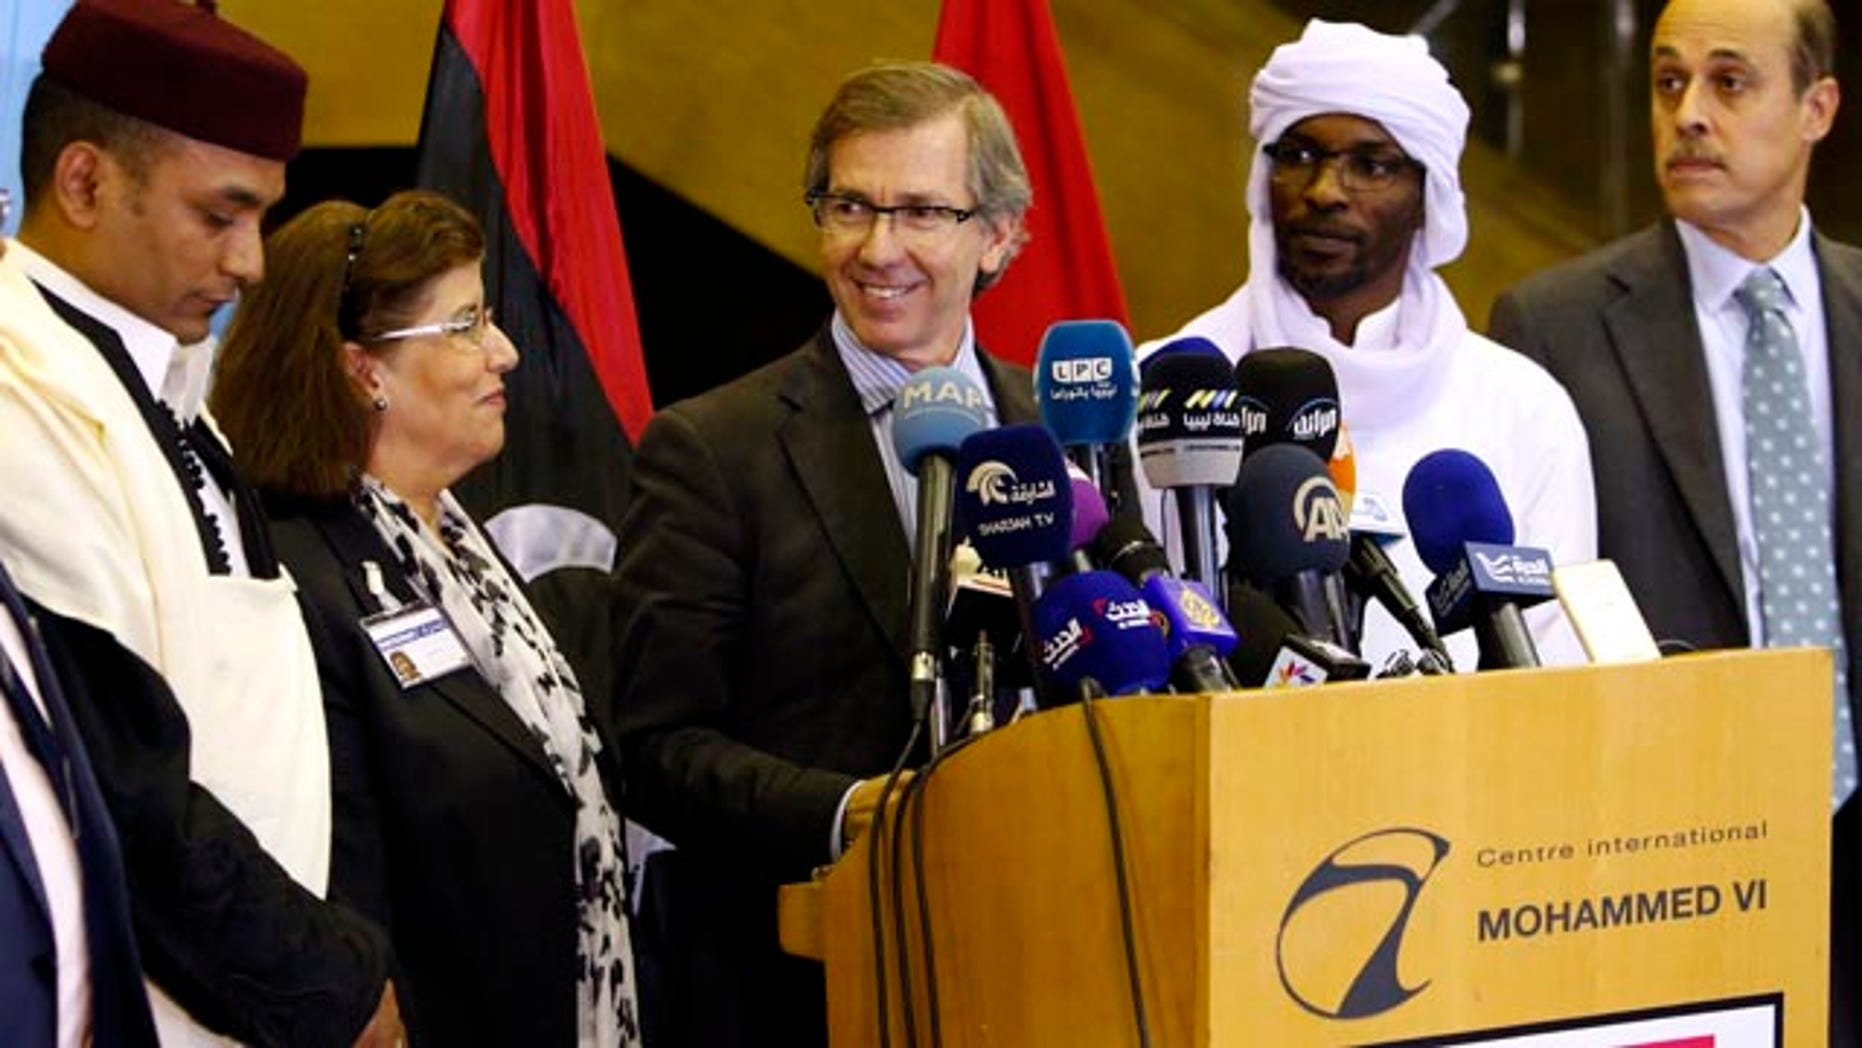 Oct. 8, 2015: United Nations envoy for Libya Bernardino Leon, center, makes an announcement to the media in Skhirat, Morocco. Leon proposed a national unity government for Libya after months of difficult talks between the north African country's two rival governments, but now it's up to the two sides and Libyans themselves to approve it. (AP Photo/Abdeljalil Bounhar)